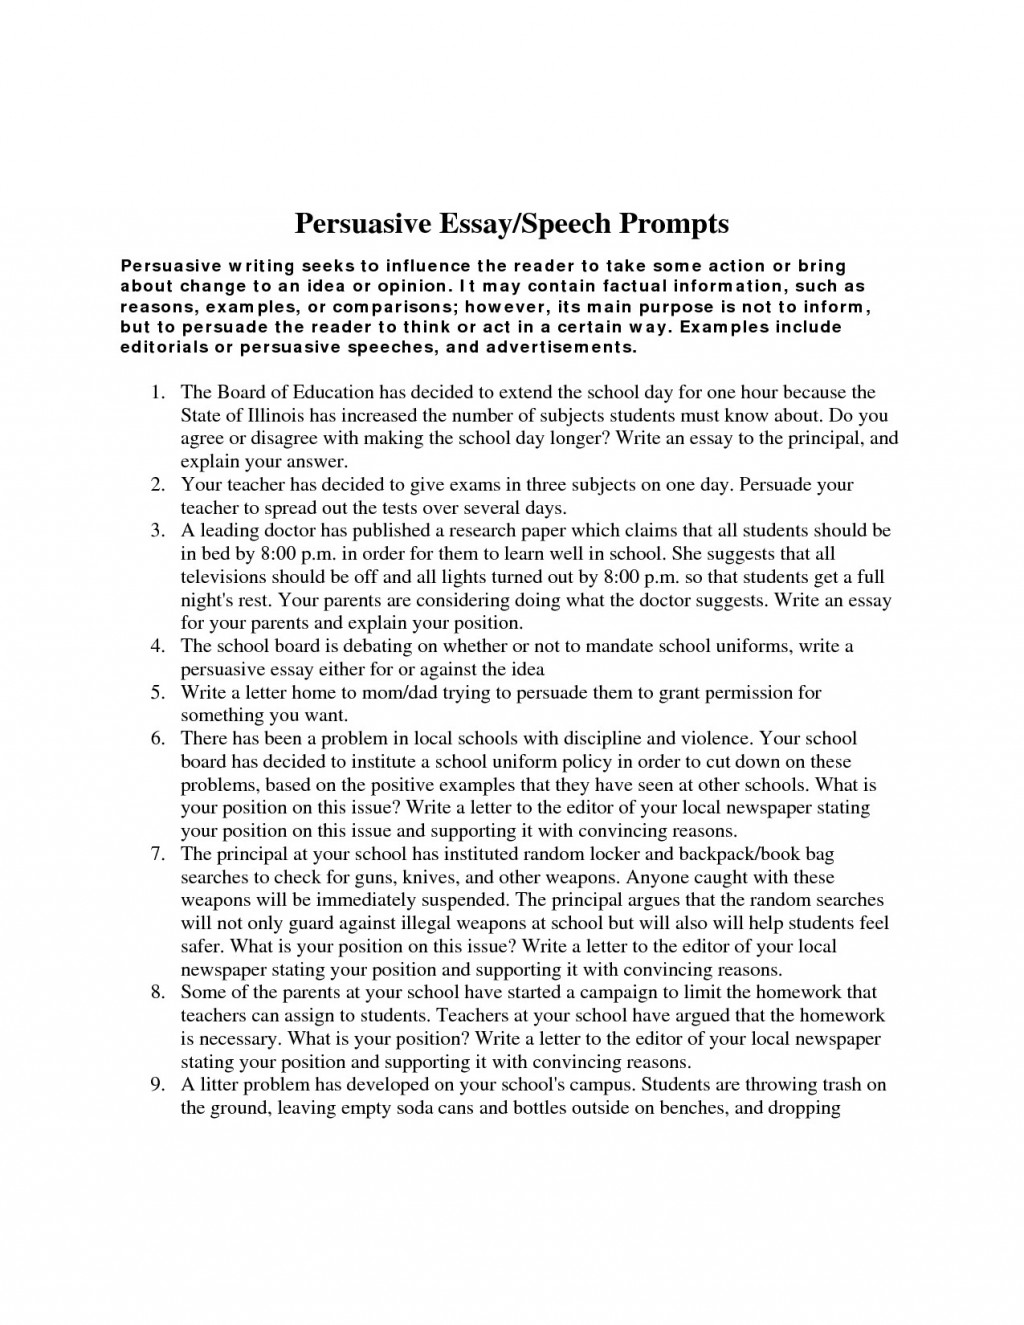 004 Persuasive Essay Prompts Topics For High School Students Unique In Urdu Halloween Writing Questions Large